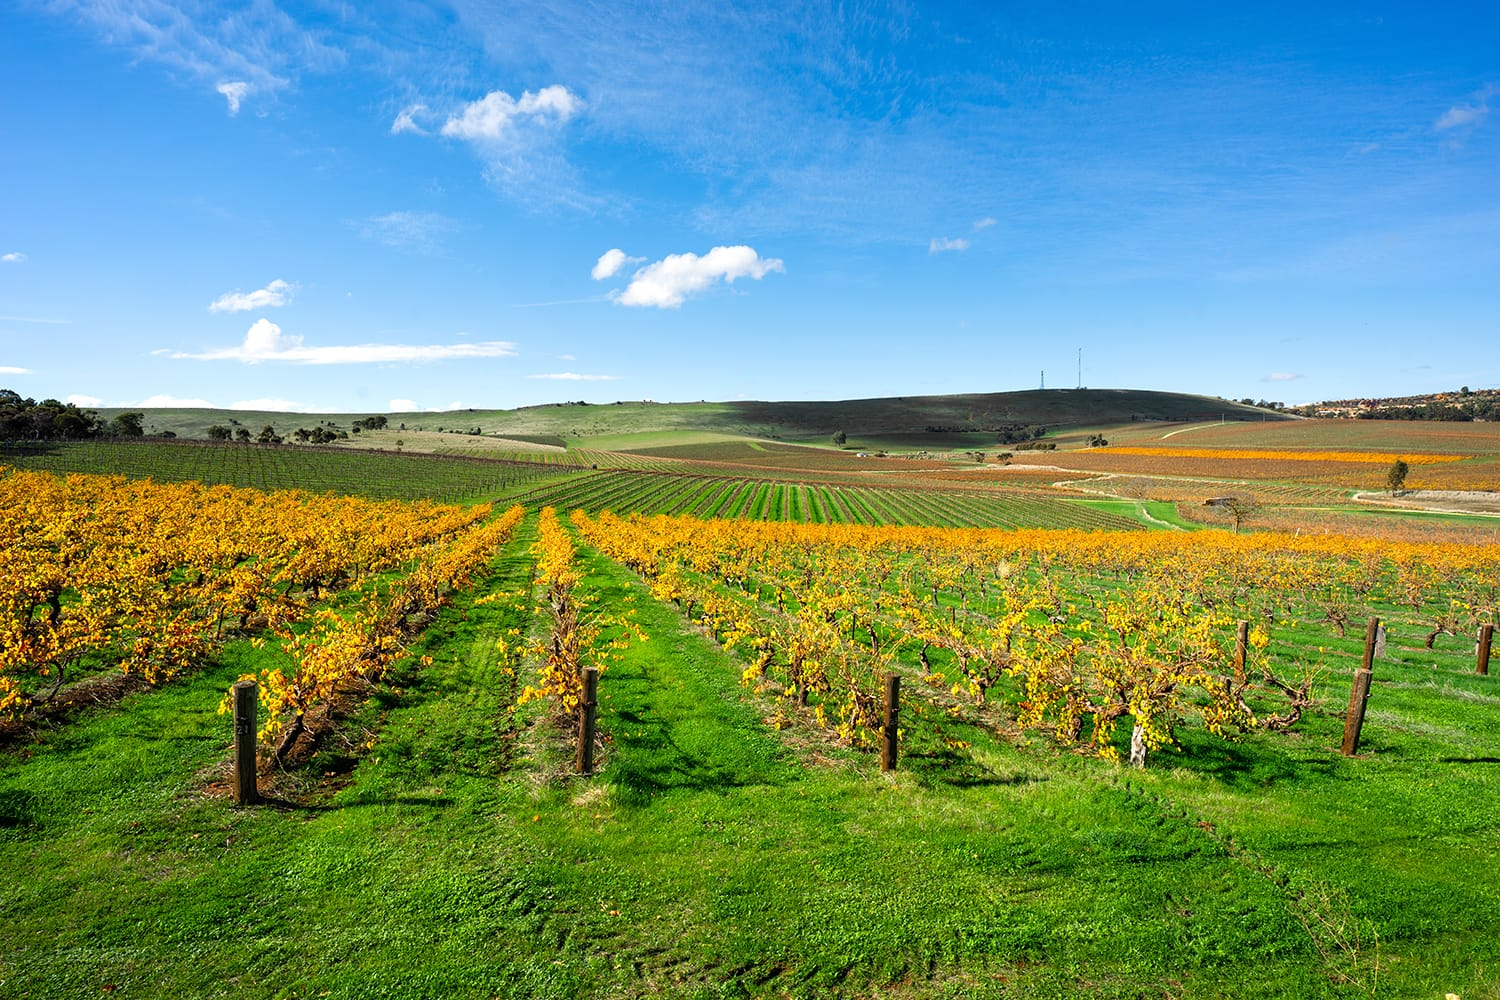 Vineyard Scene from Clare Valley, South Australia